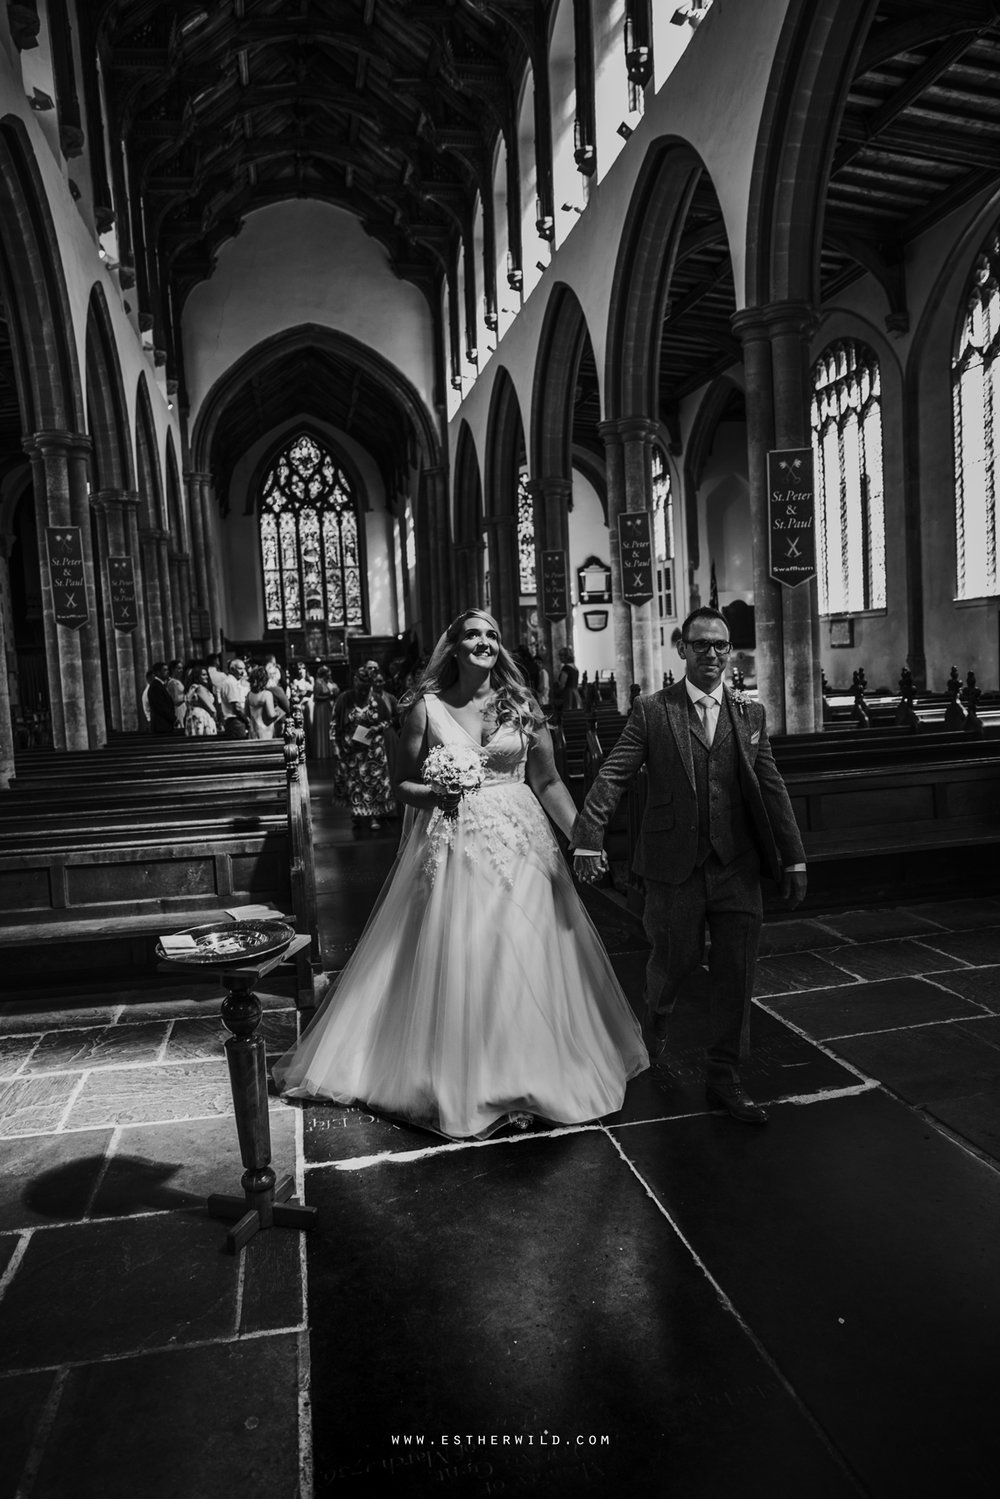 Swaffham_Wedding_Castle_Acre_Norfolk_Esther_Wild_Photographer_Wedding_Photography_3R8A0933-2.jpg